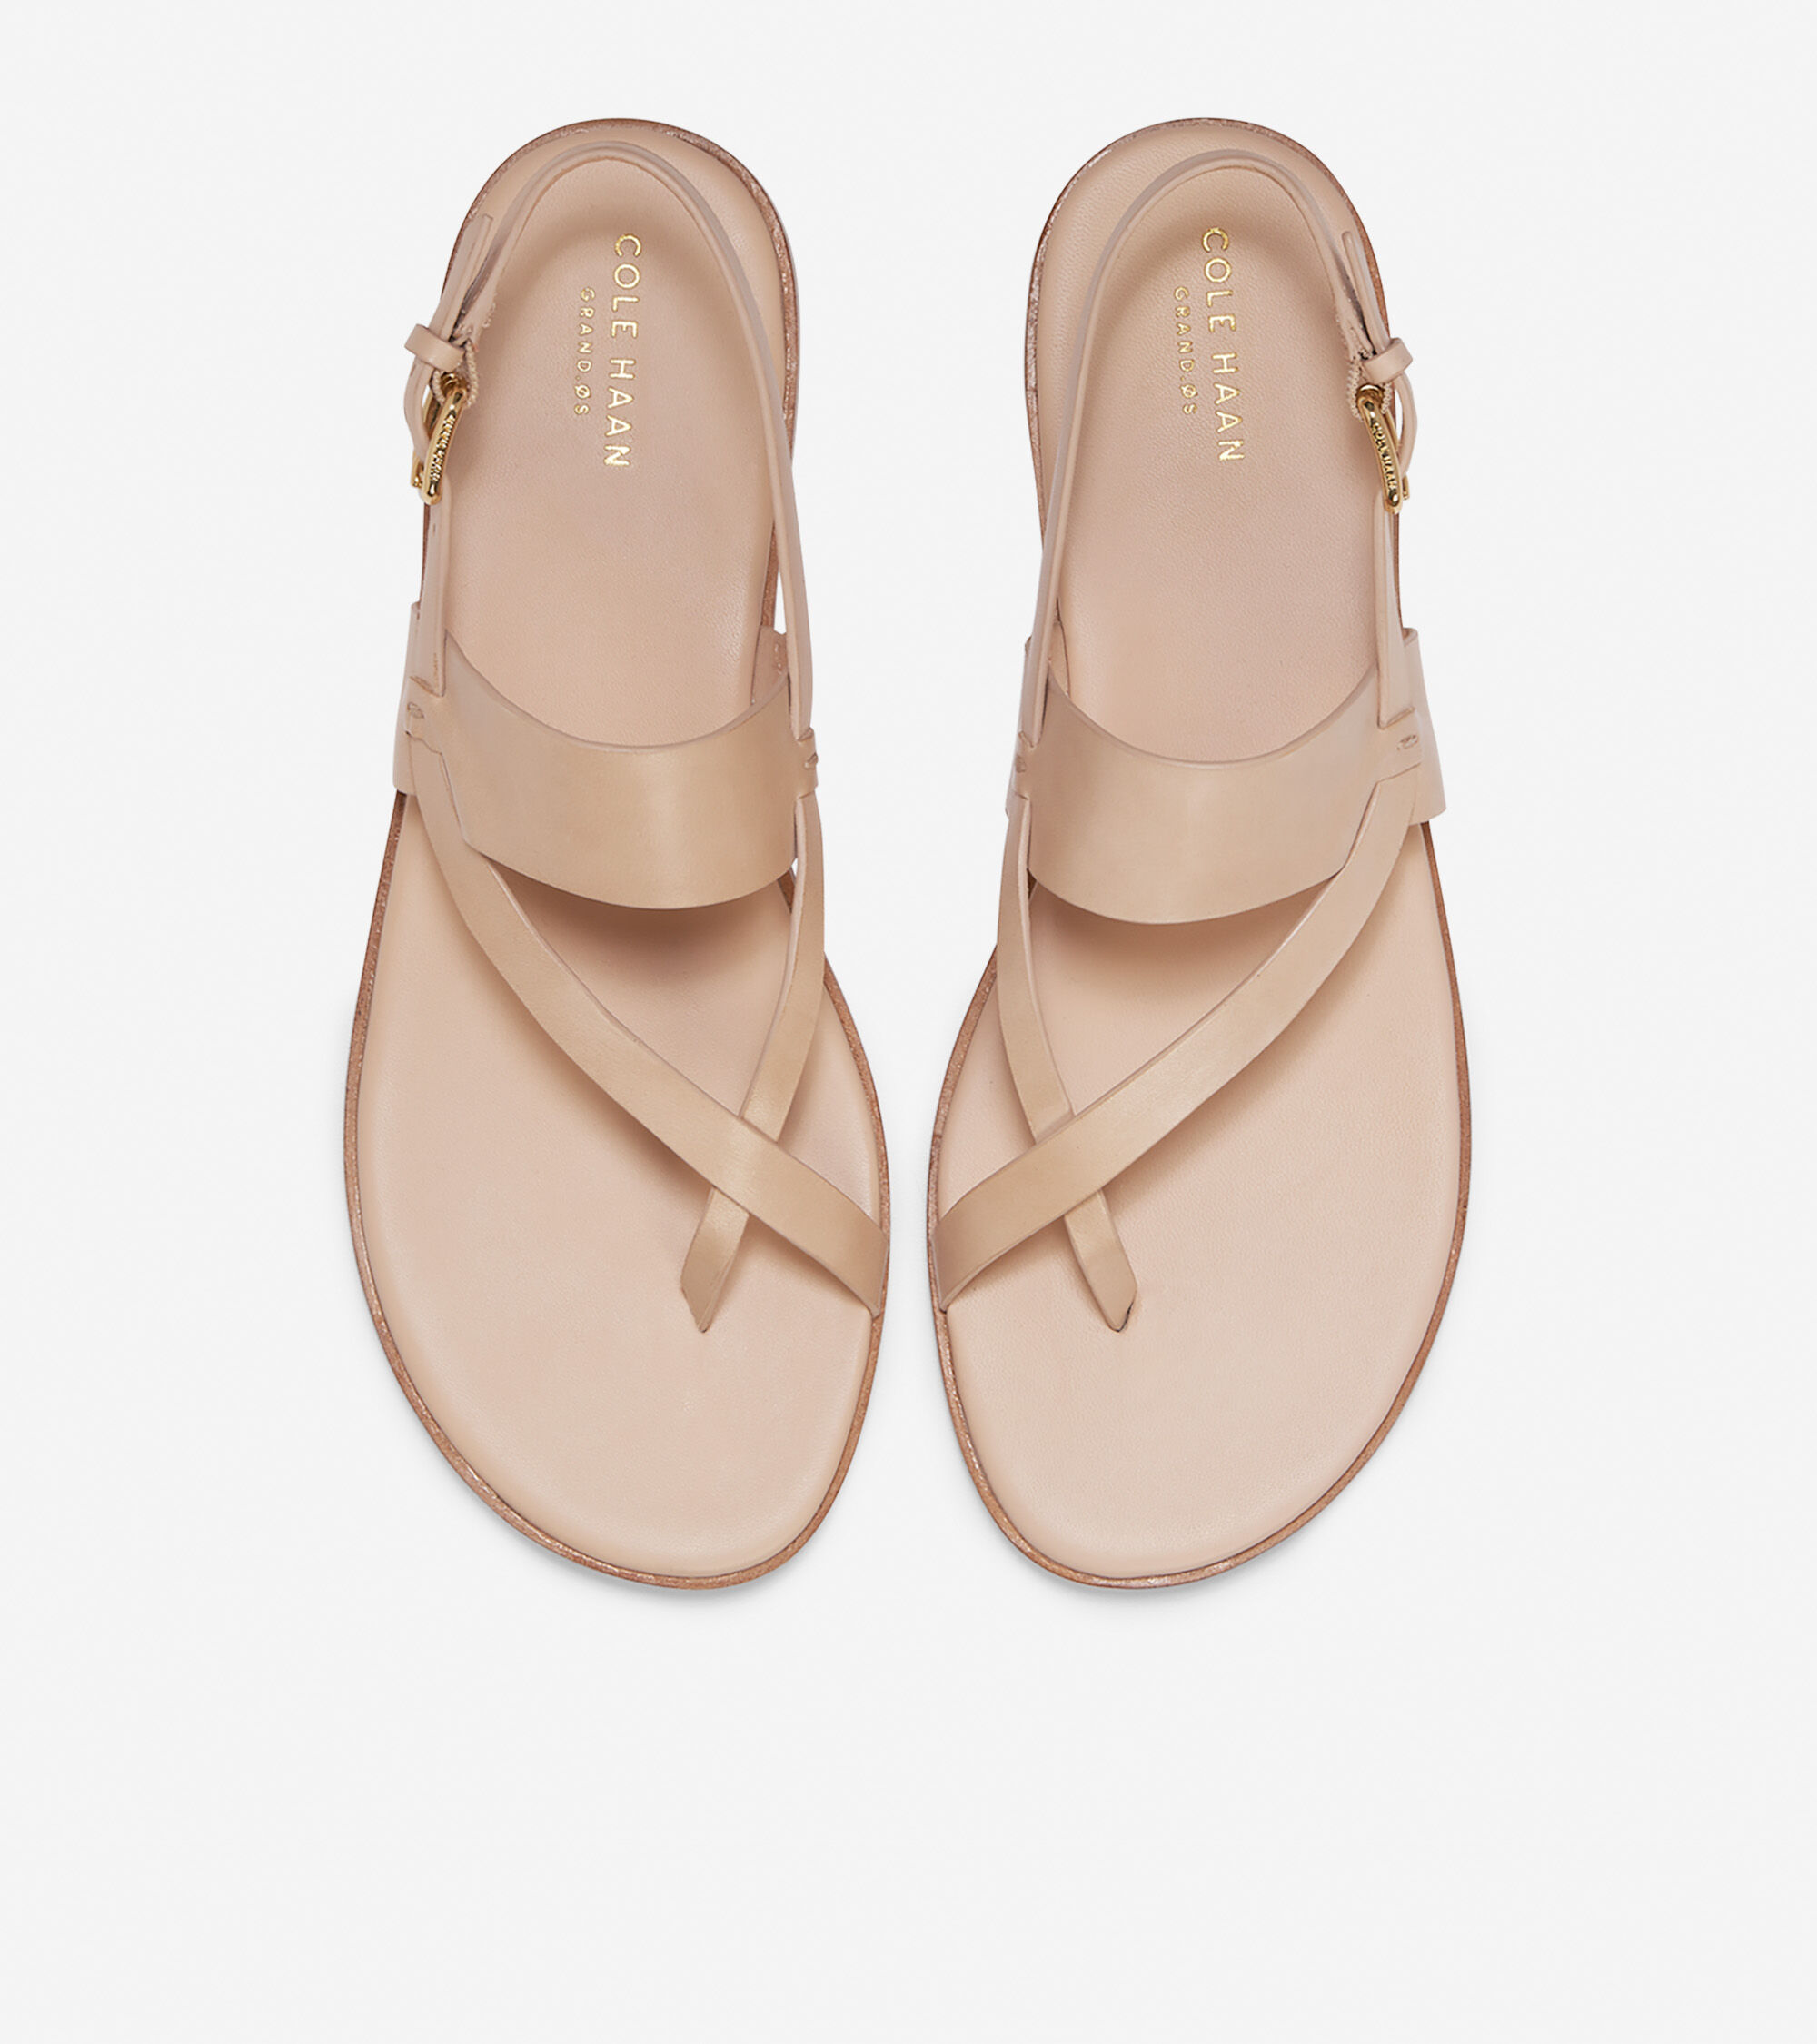 f8c2f962aa1 Women s Anica Thong Sandals in Nude Leather